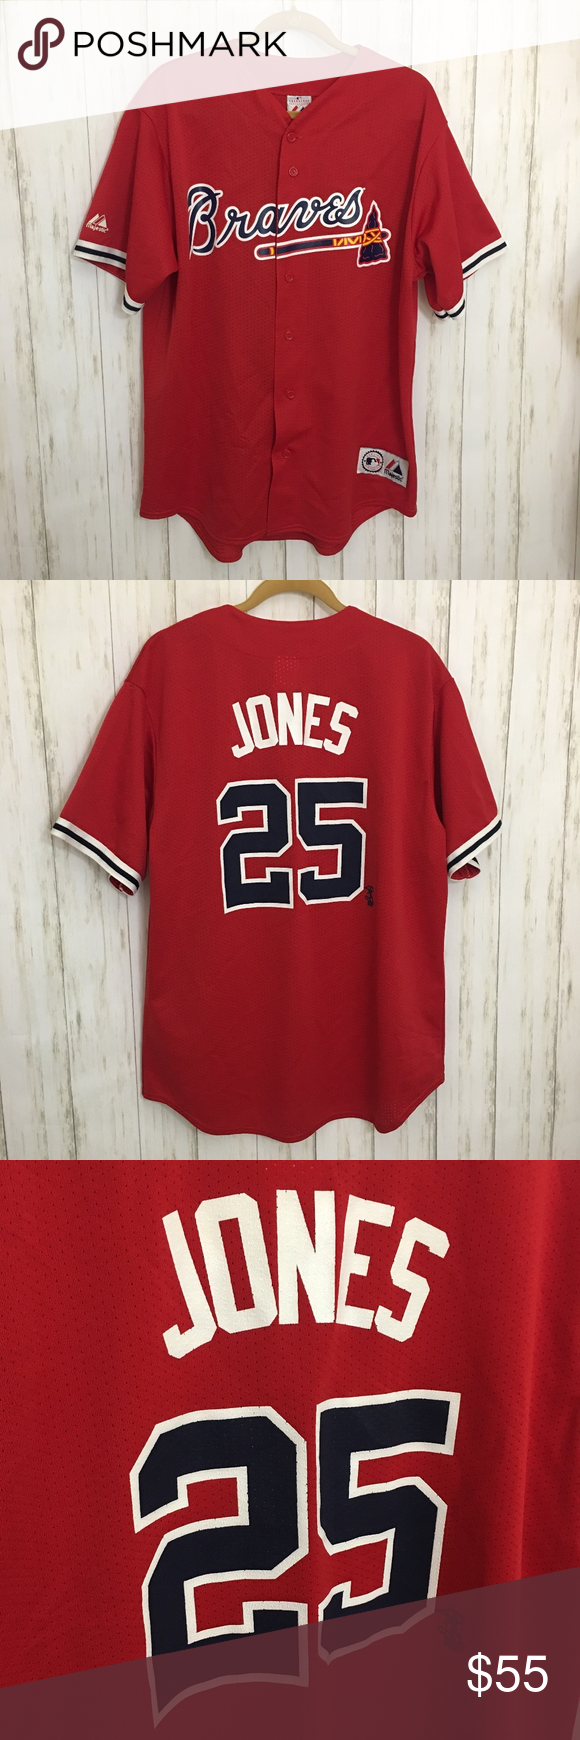 Majestic Atl Braves Jersey Jones 25 Xl Red With Images Majestic Shirts Casual Shirts Clothes Design